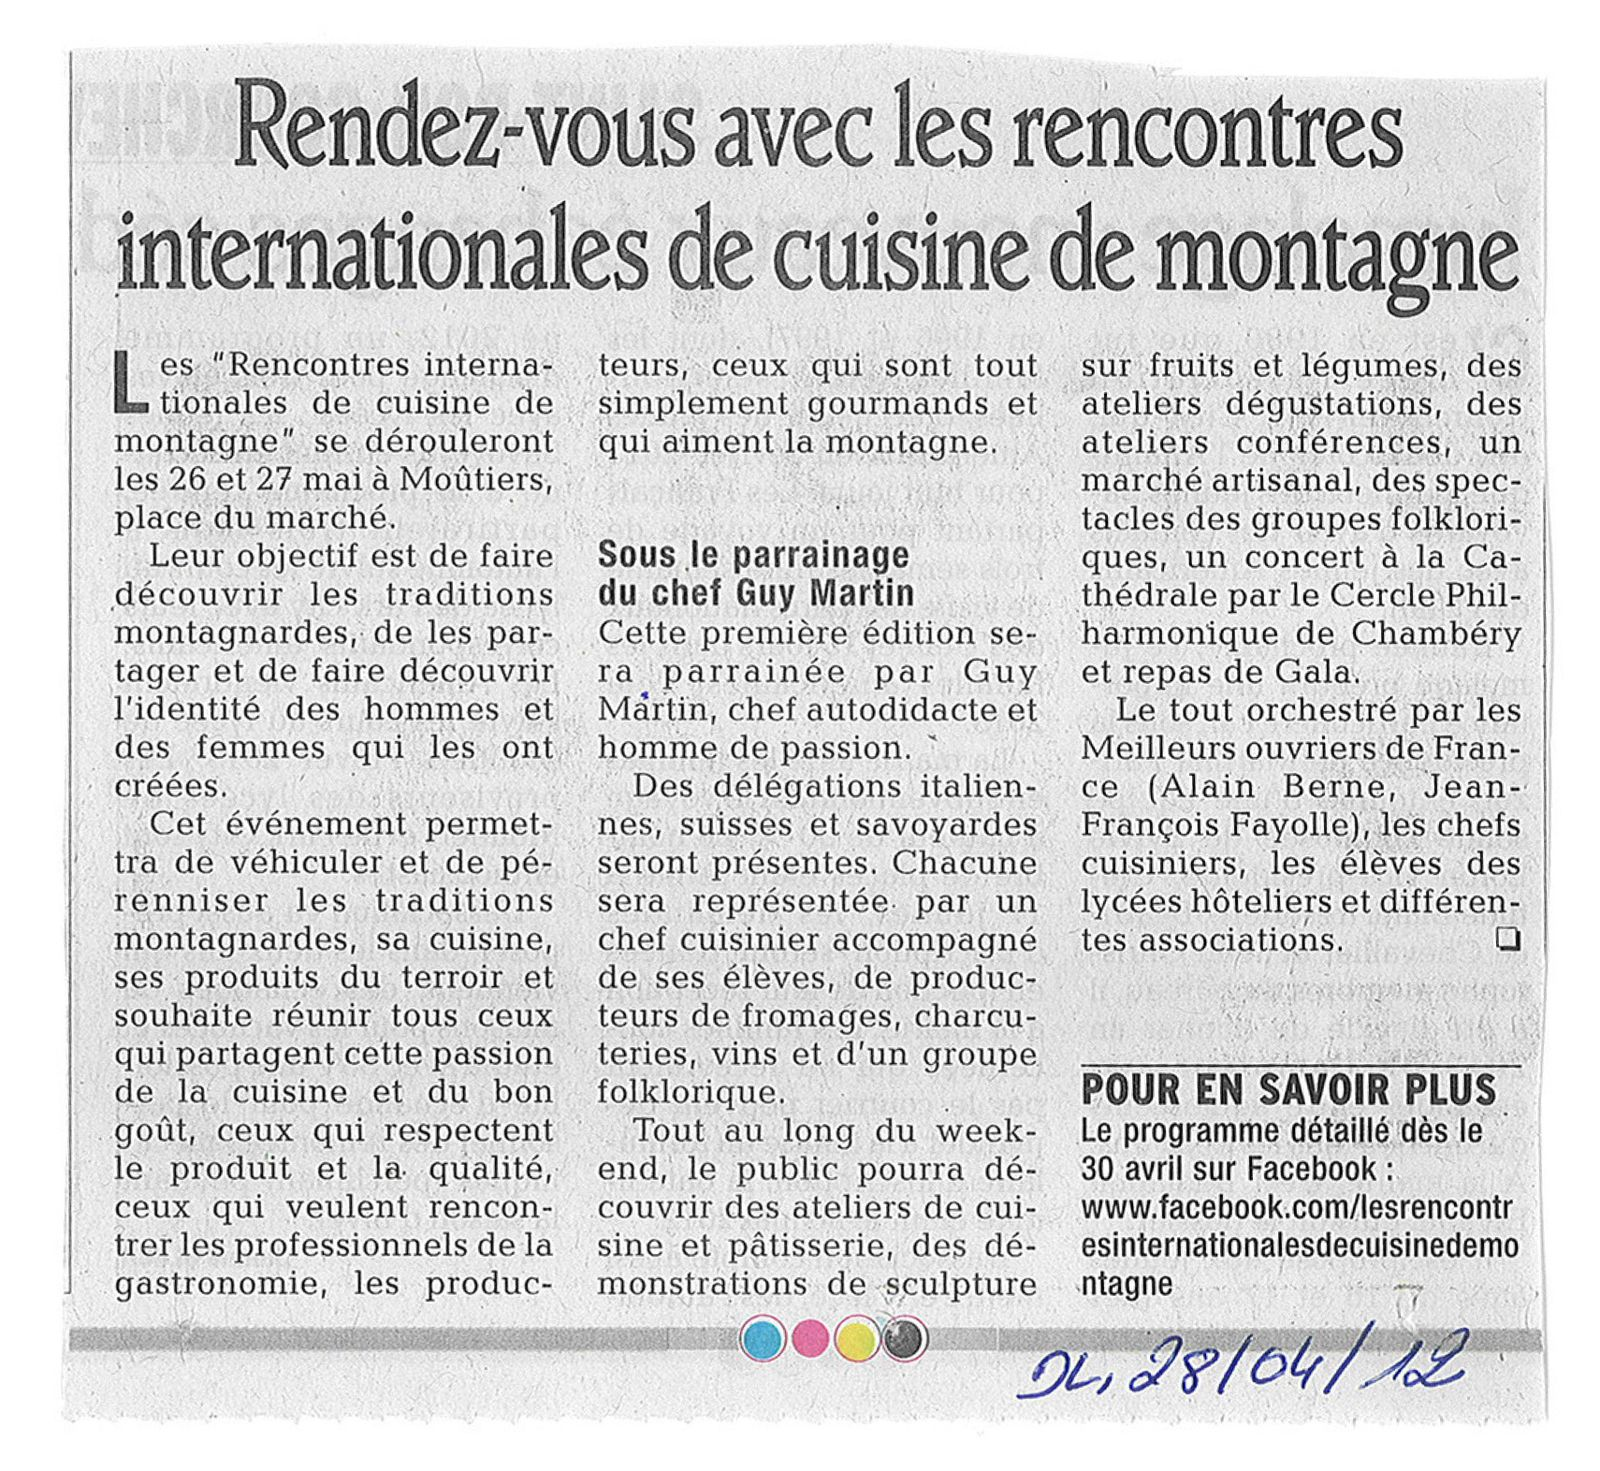 Rencontre internationale